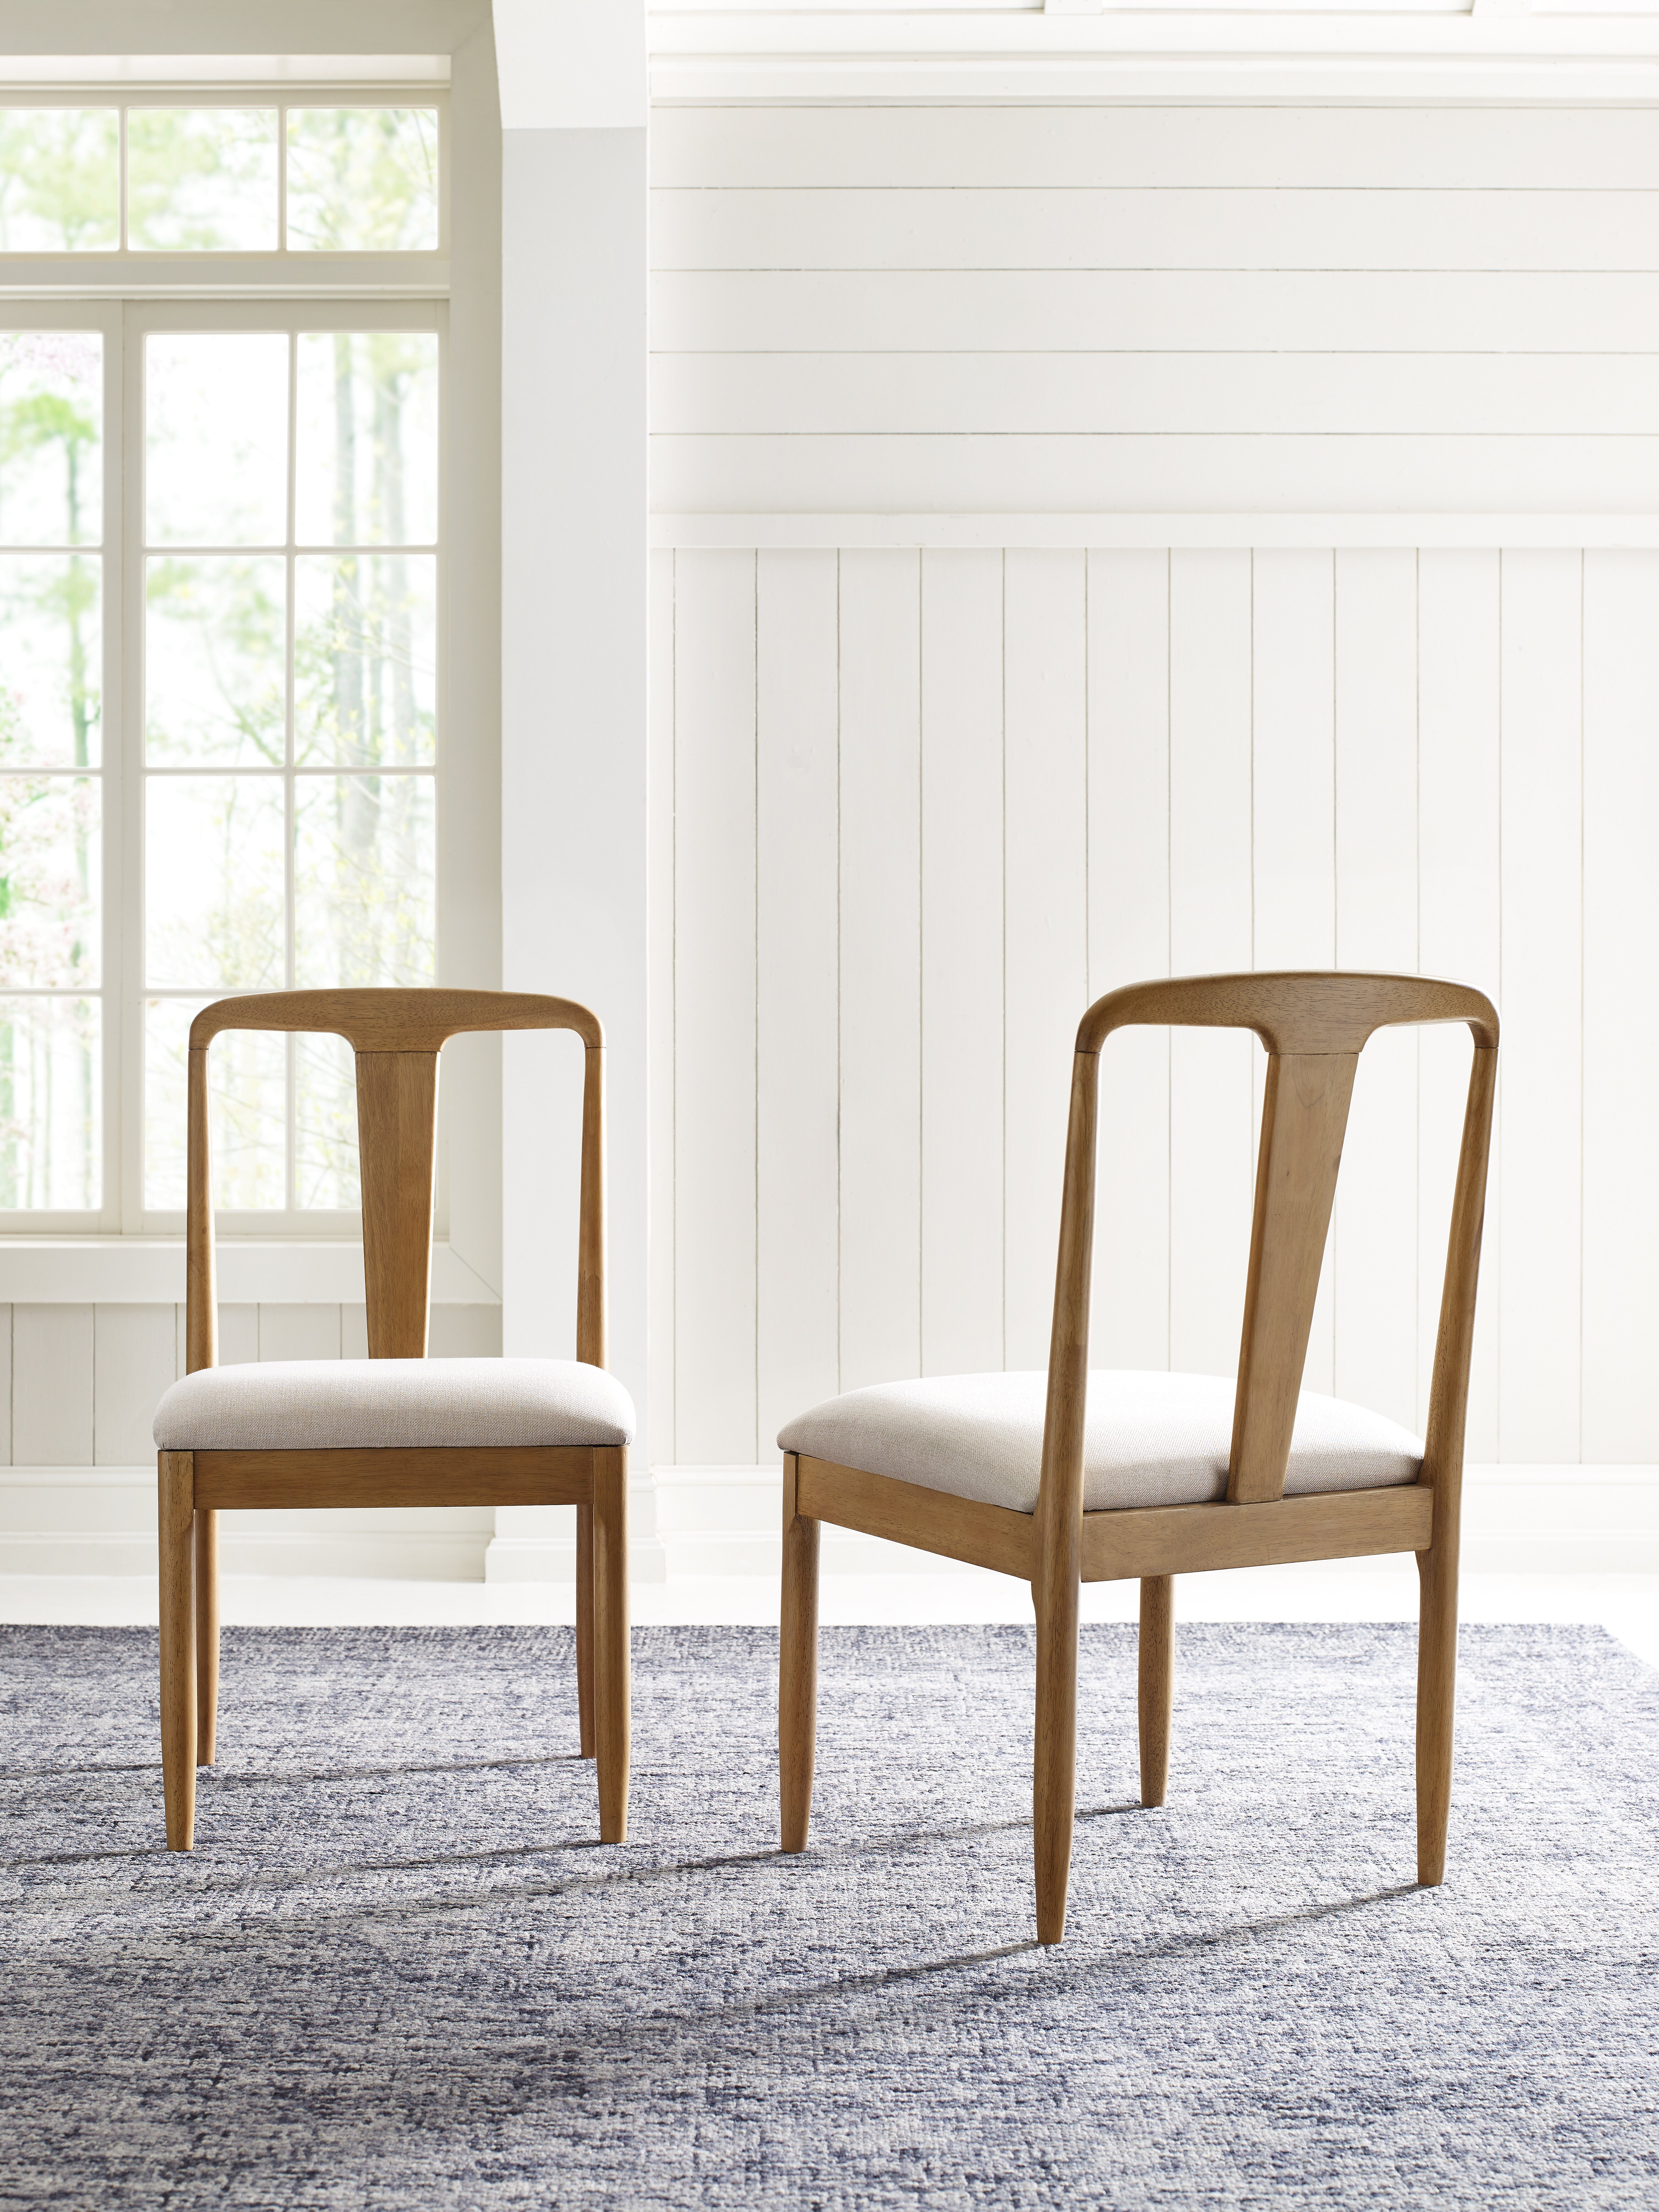 Hygge Upholstered Slat Back Side Chair In Cashmere Reviews Joss Main